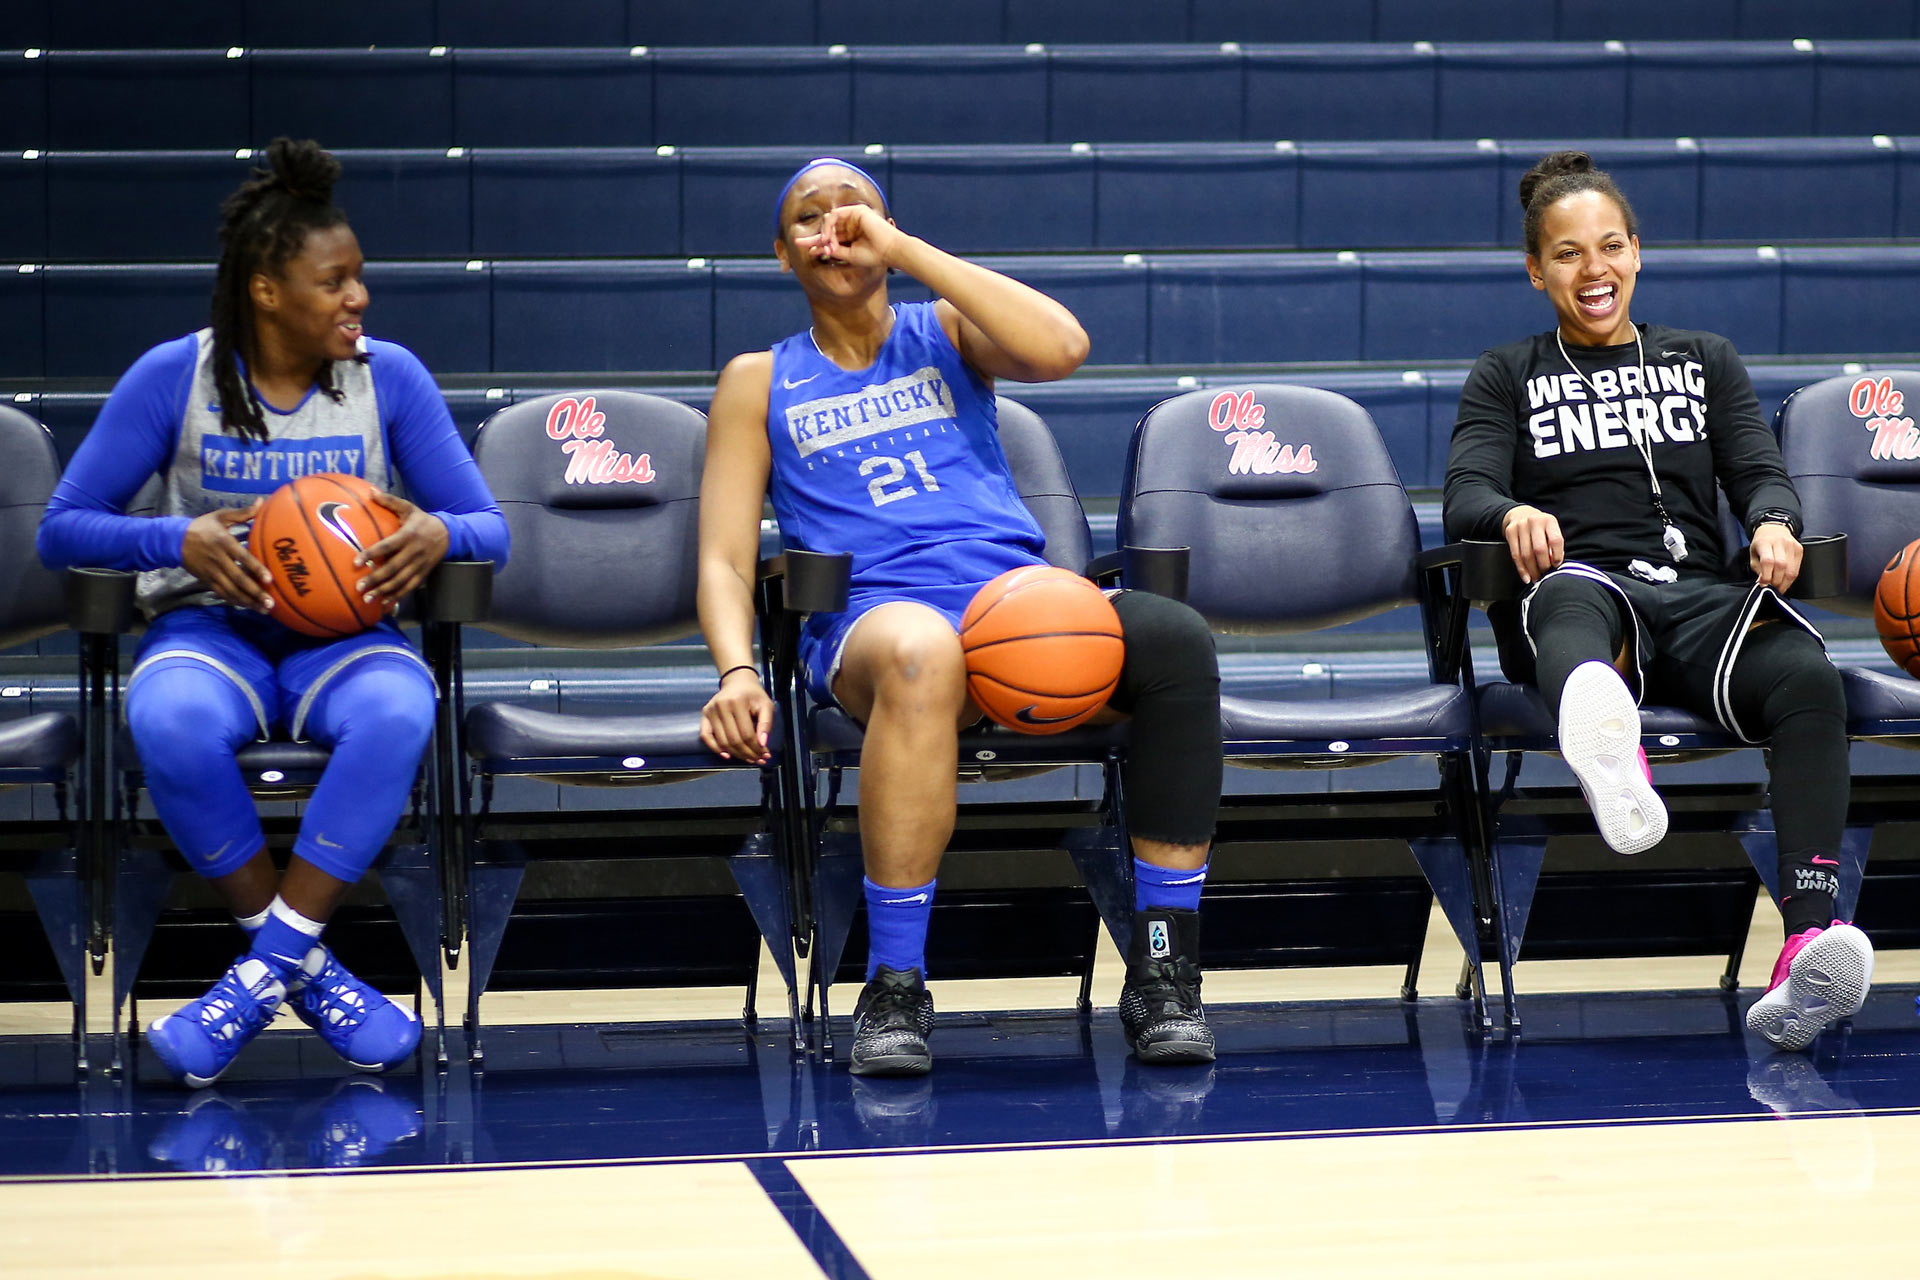 Ogechi sits on the sidelines, wearing a knee brace and a UK jersey. She is laughing and holding a hand up to her mouth. Coach Amber Smith is sitting to one side of her and is also laughing. Another teammate is sitting on the other side of Ogechi and is grinning at both of them.